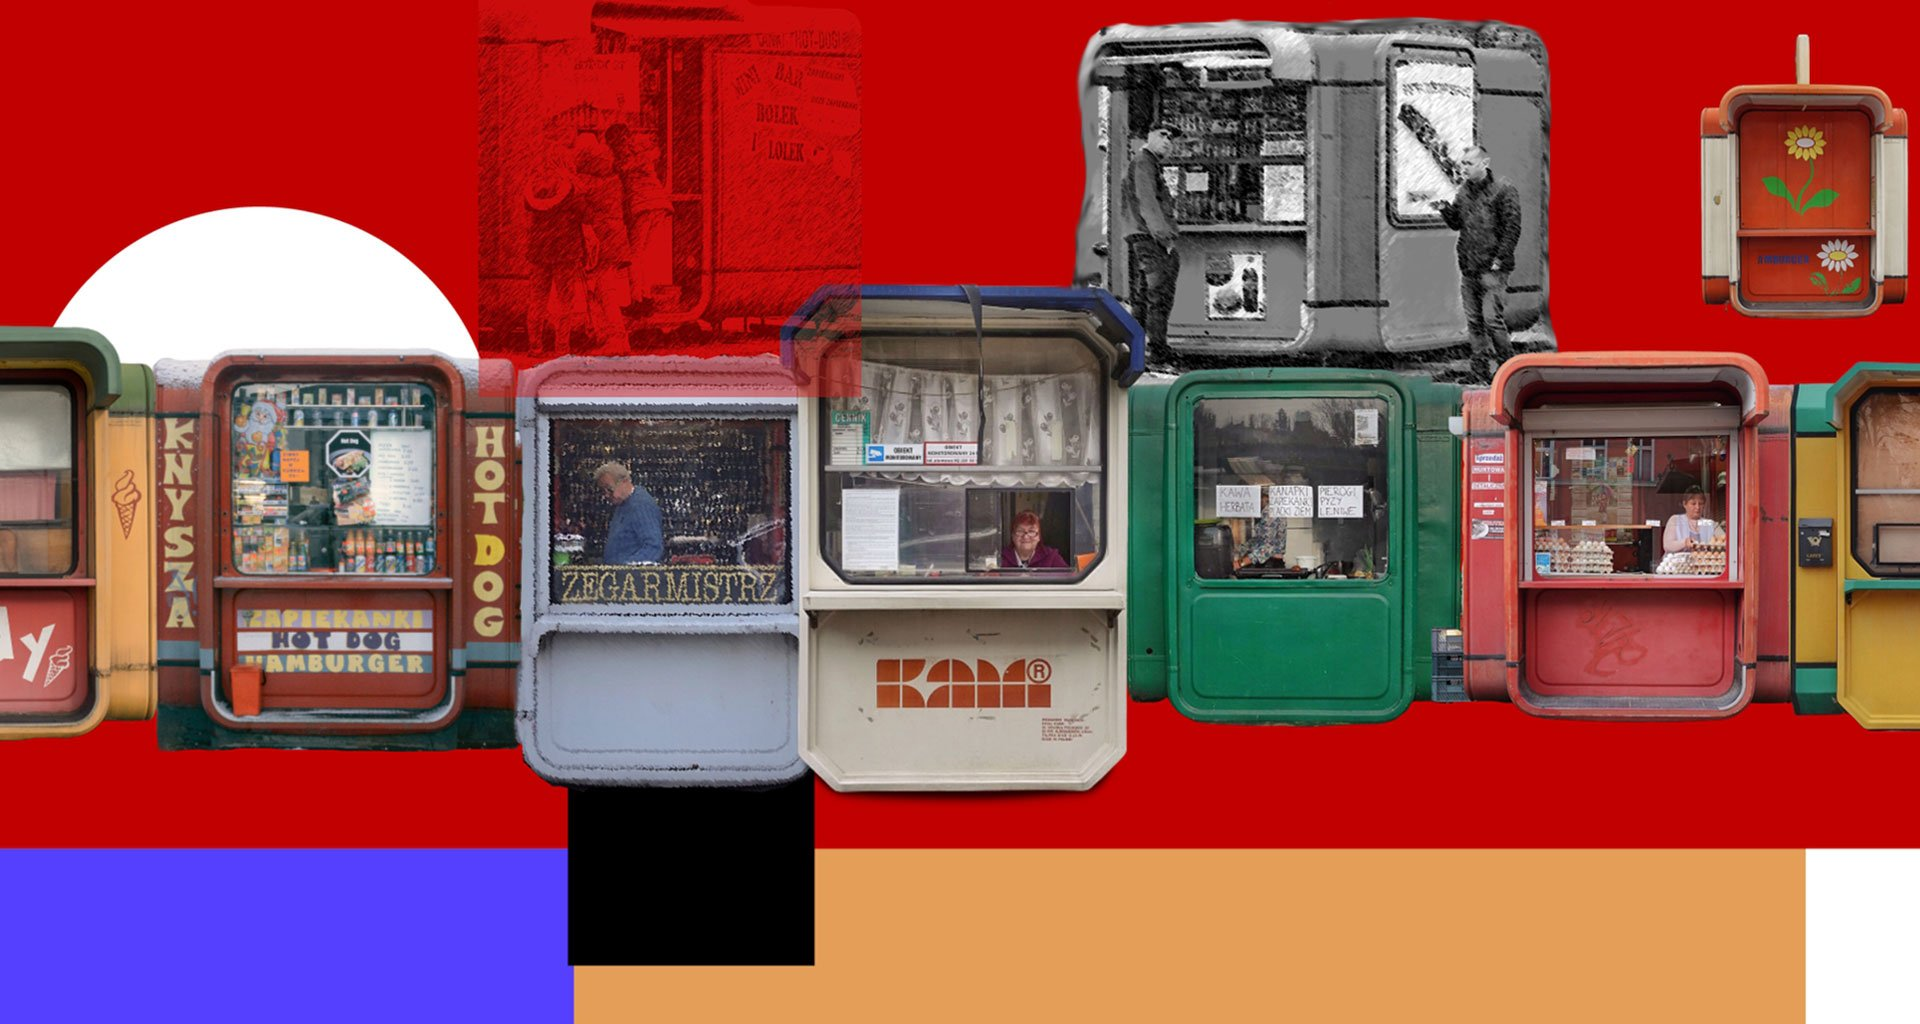 Hot dog joint? Time capsule? The sad decline of Eastern Europe's iconic K67 kiosks